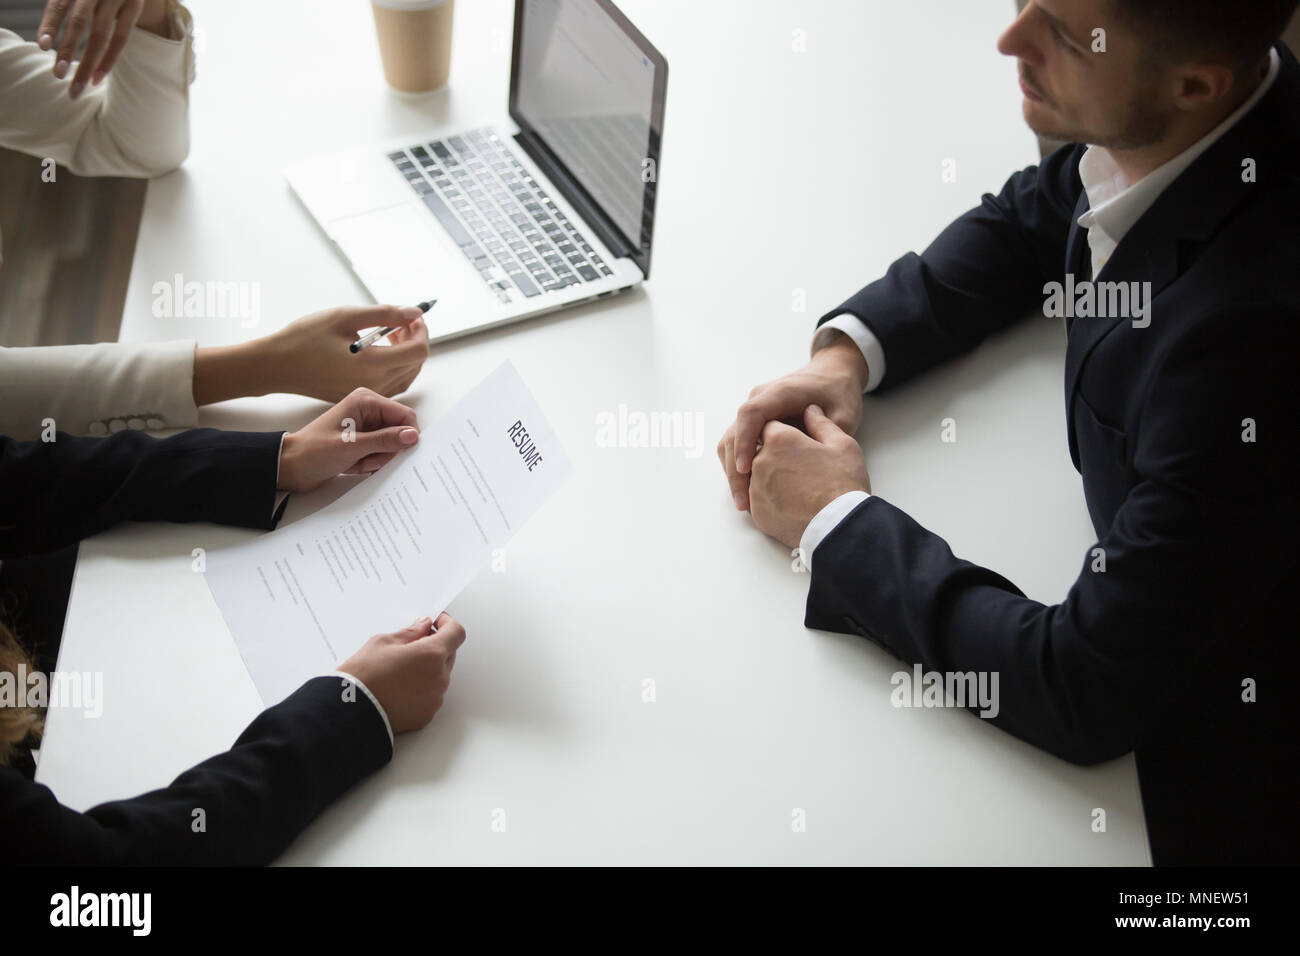 Candidat ayant entrevue d'emploi Photo Stock